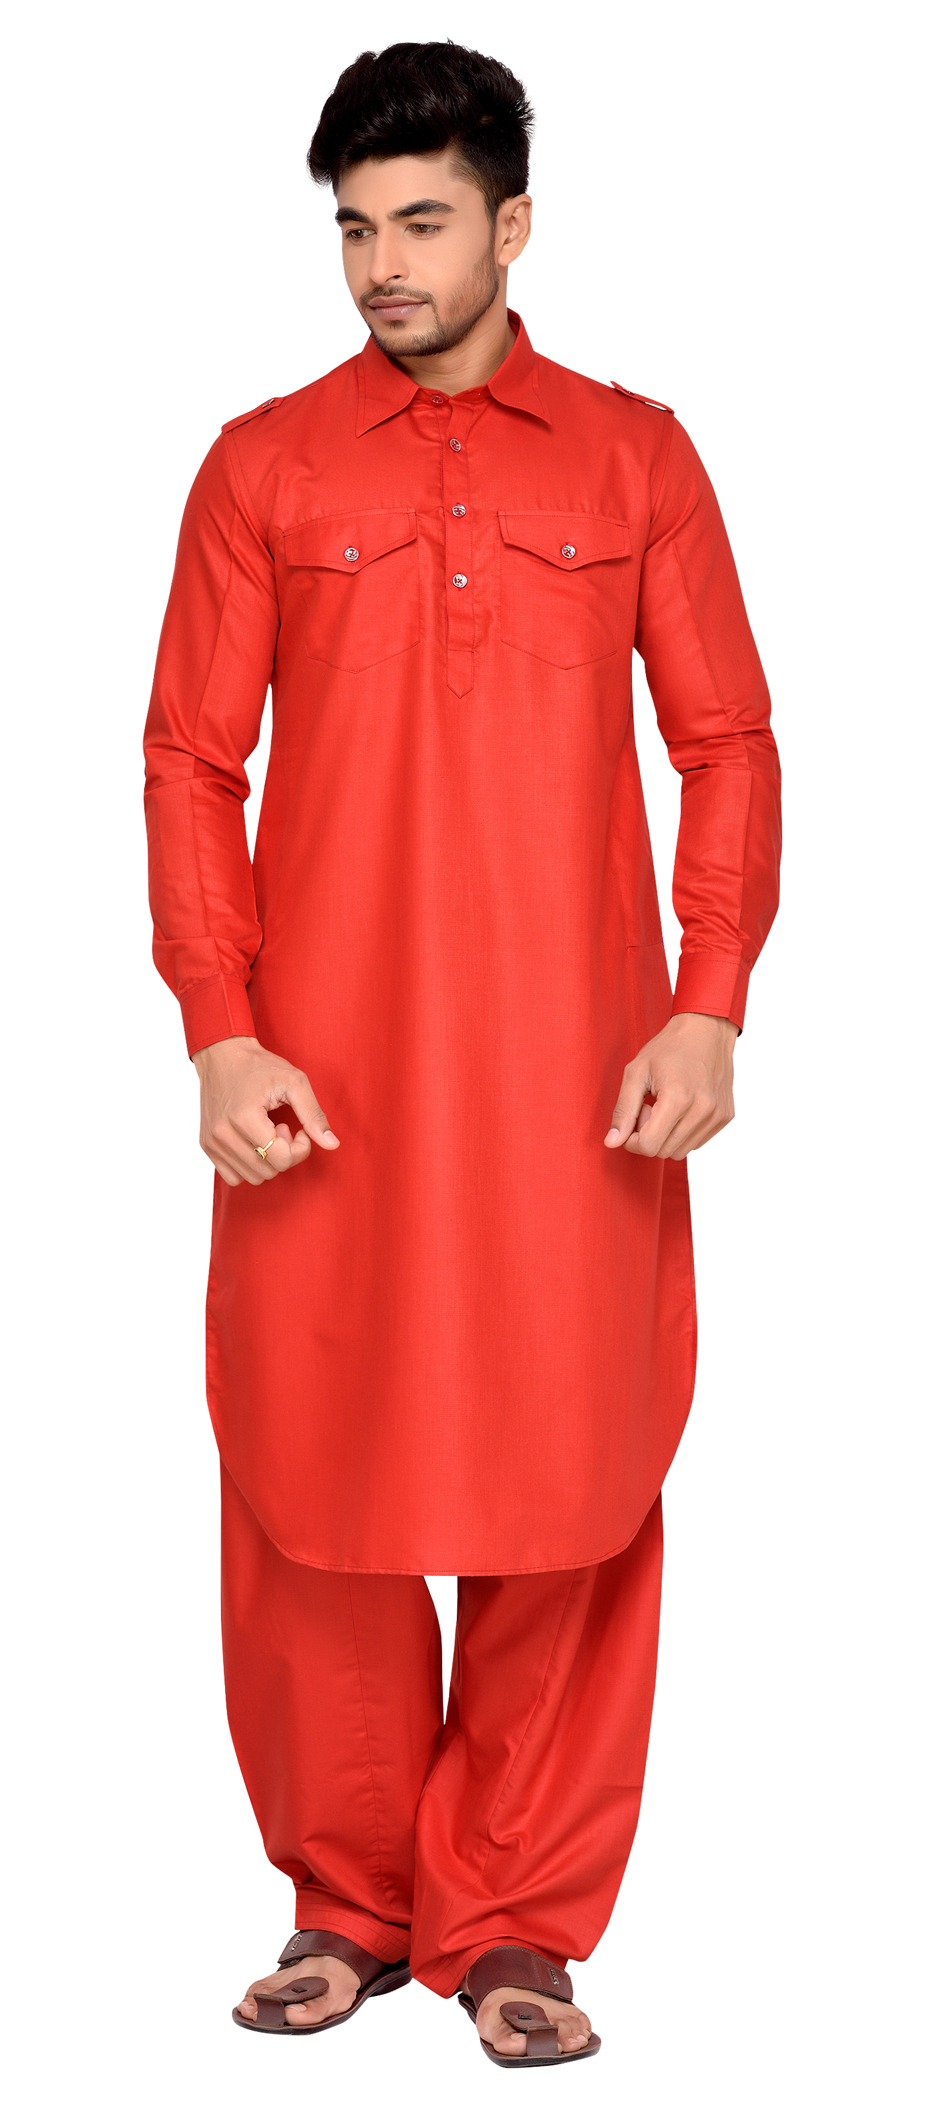 507048: Red and Maroon color family stitched Pathani Suit .